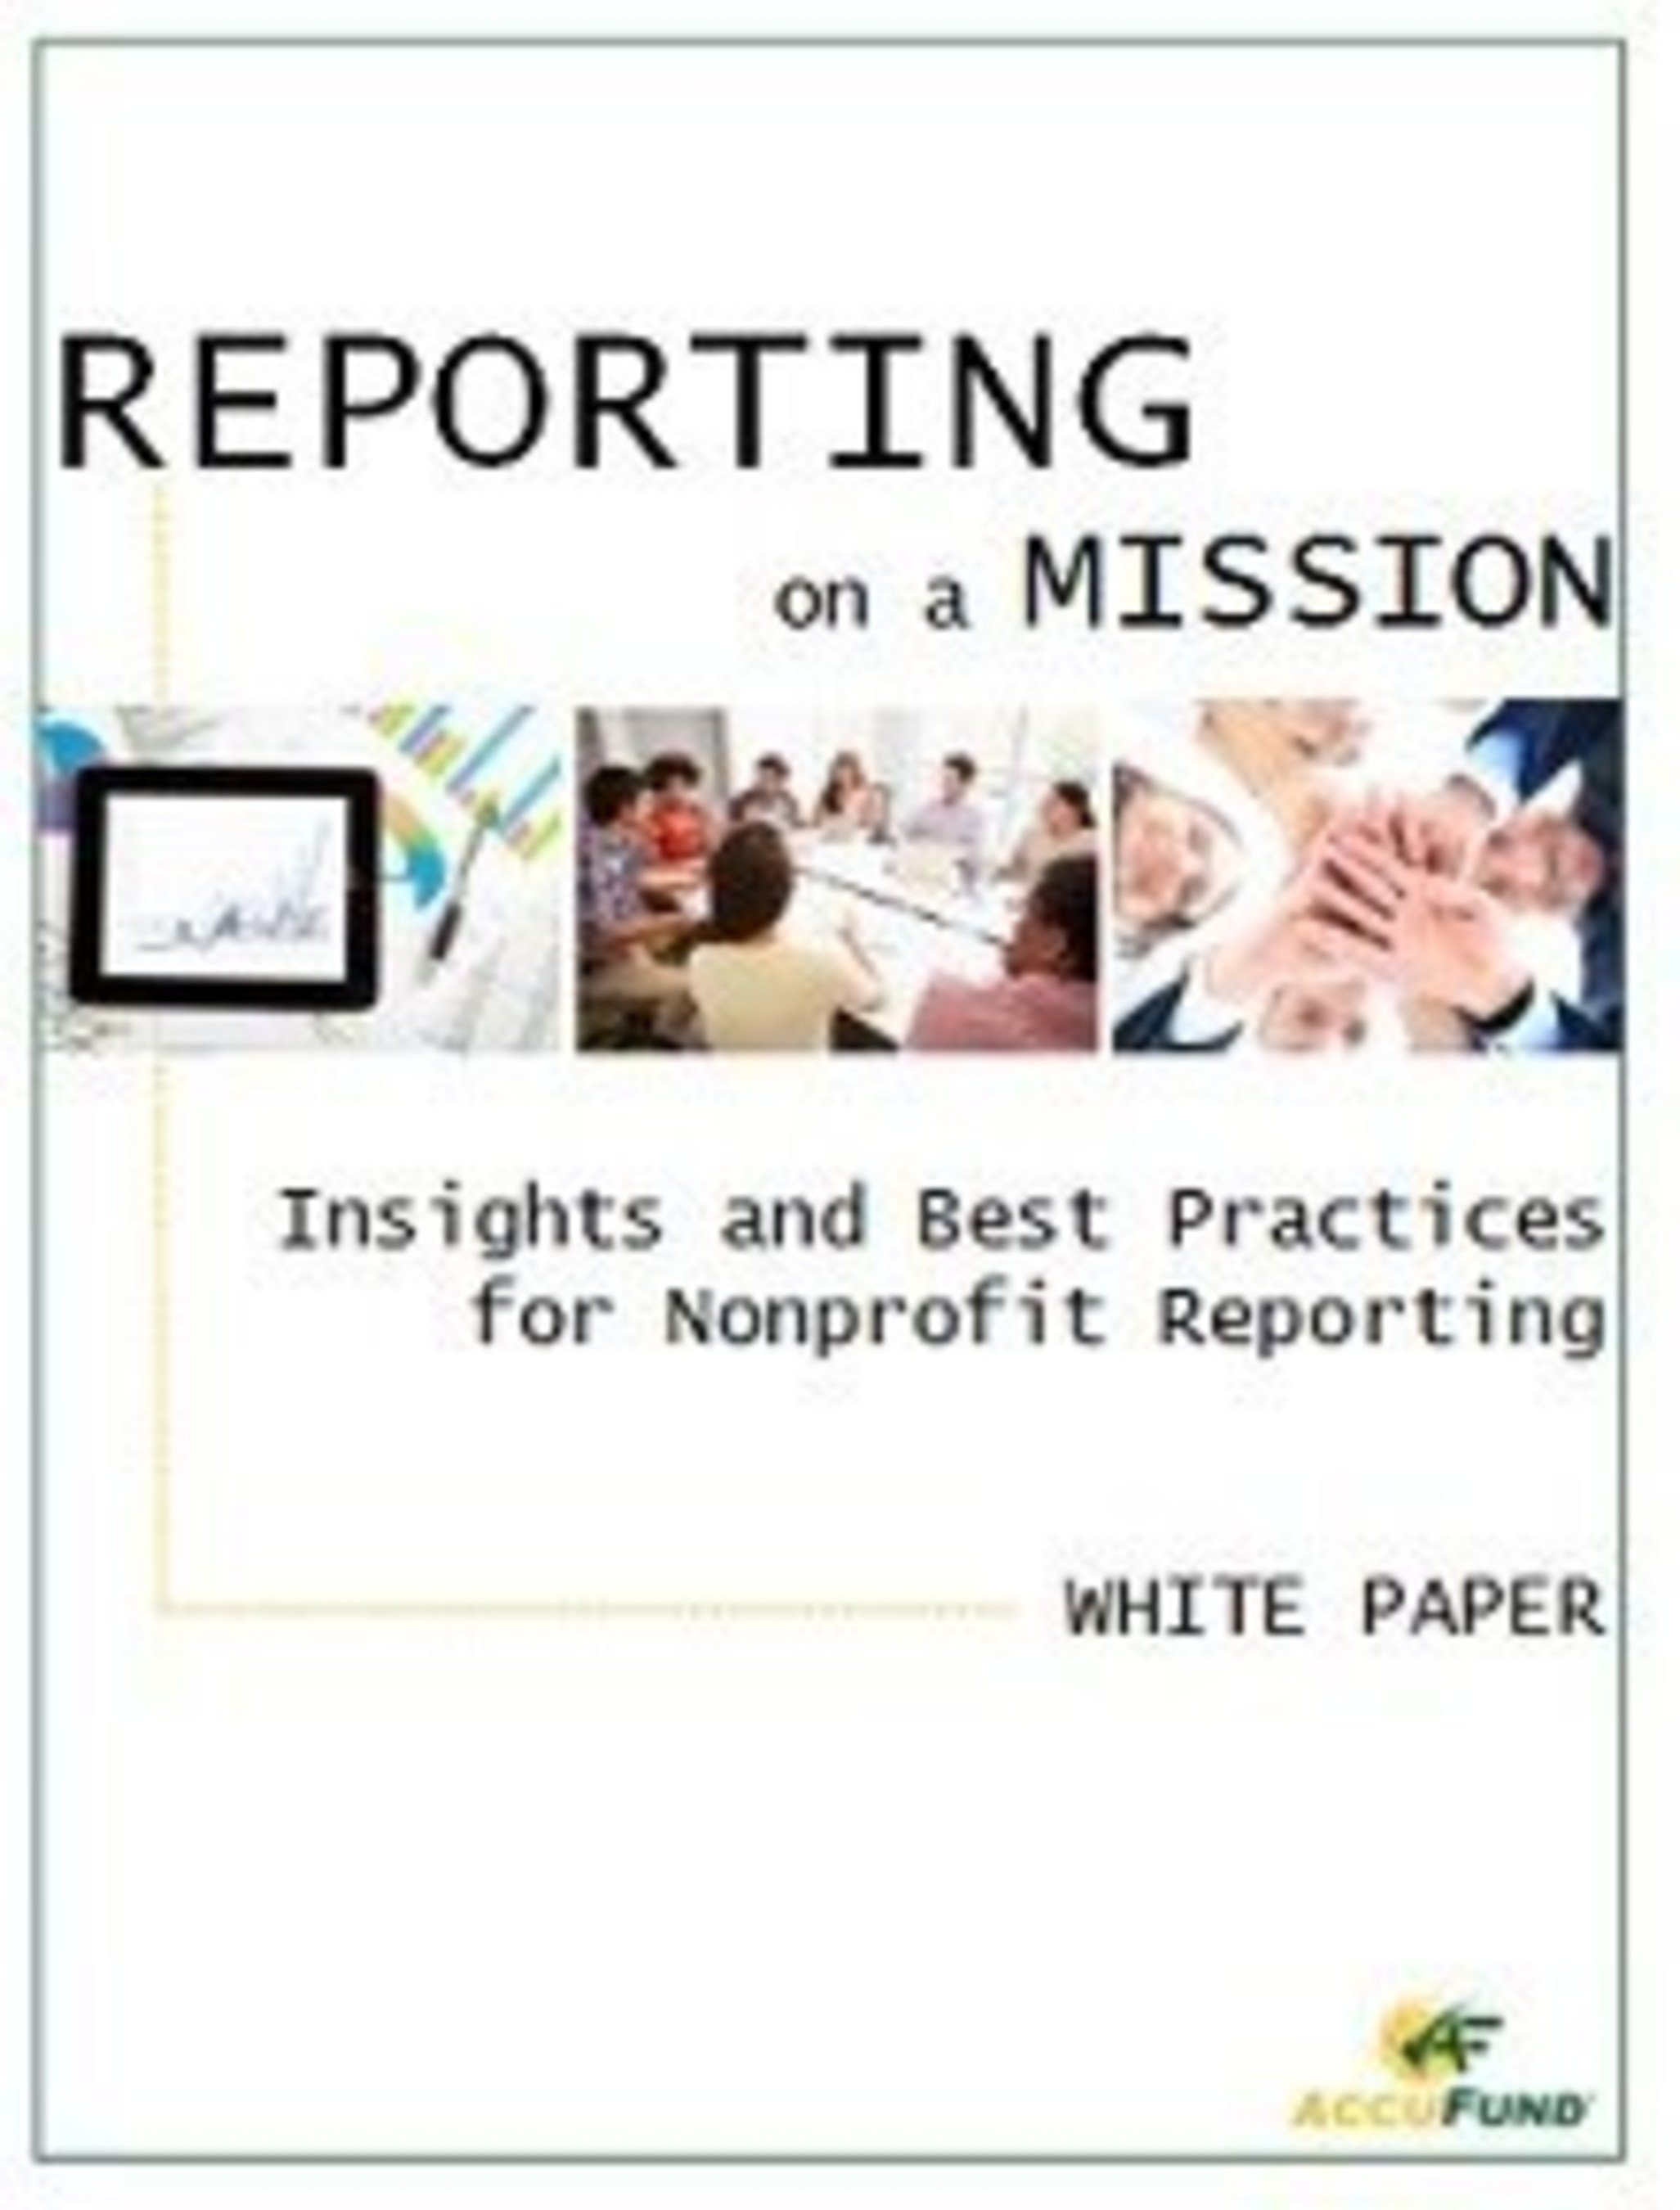 New Nonprofit White Paper: Reporting on a Mission.